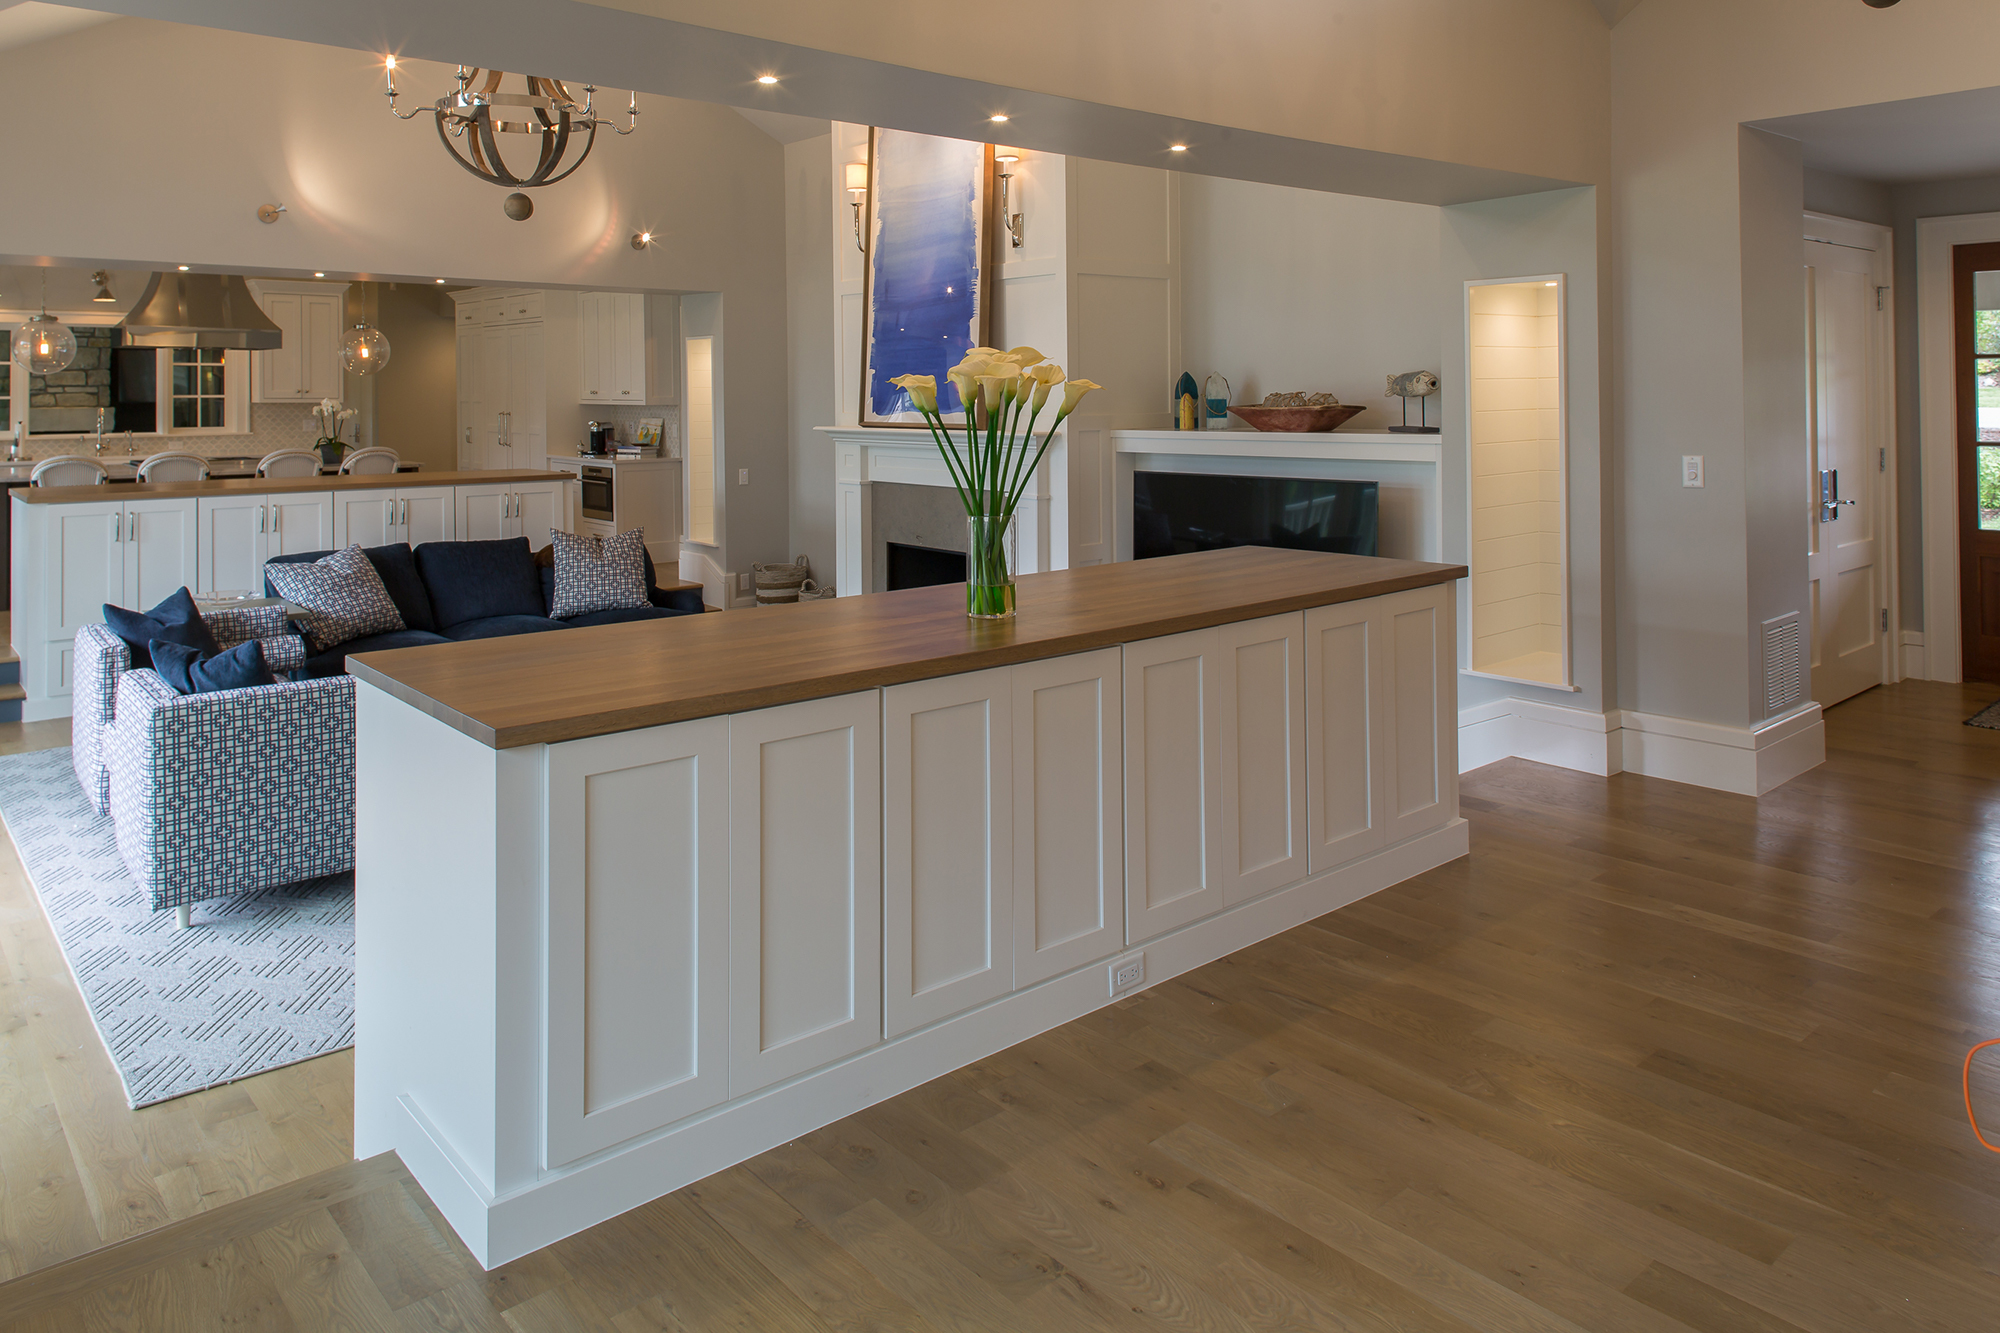 Painted Family Room Cabinets in White by Showplace Cabinetry - View 1